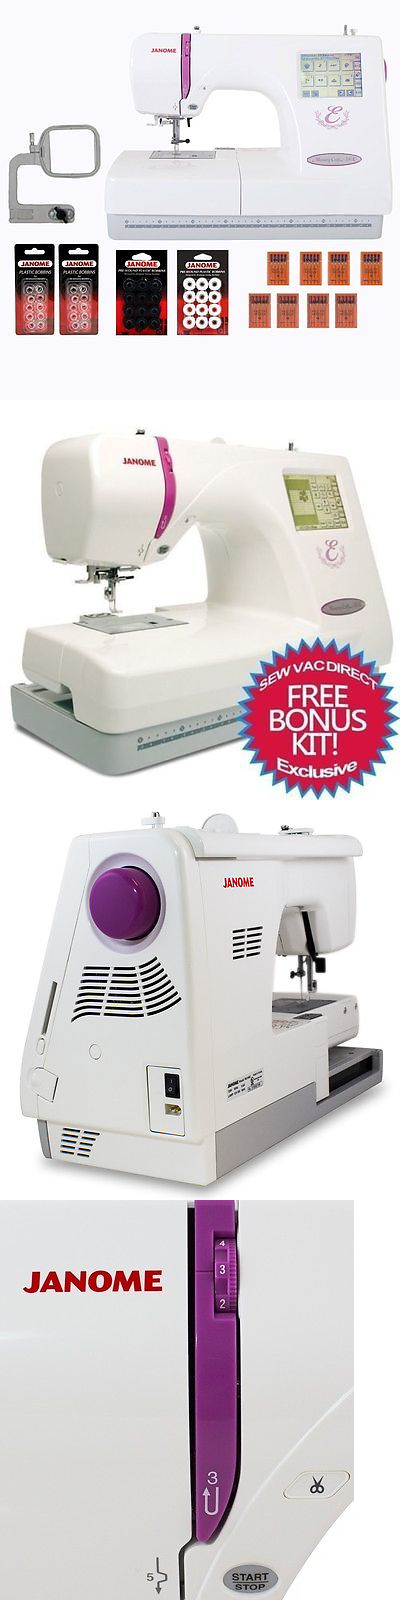 Embroidery Machines 71196 Janome Memory Craft 350e Embroidery